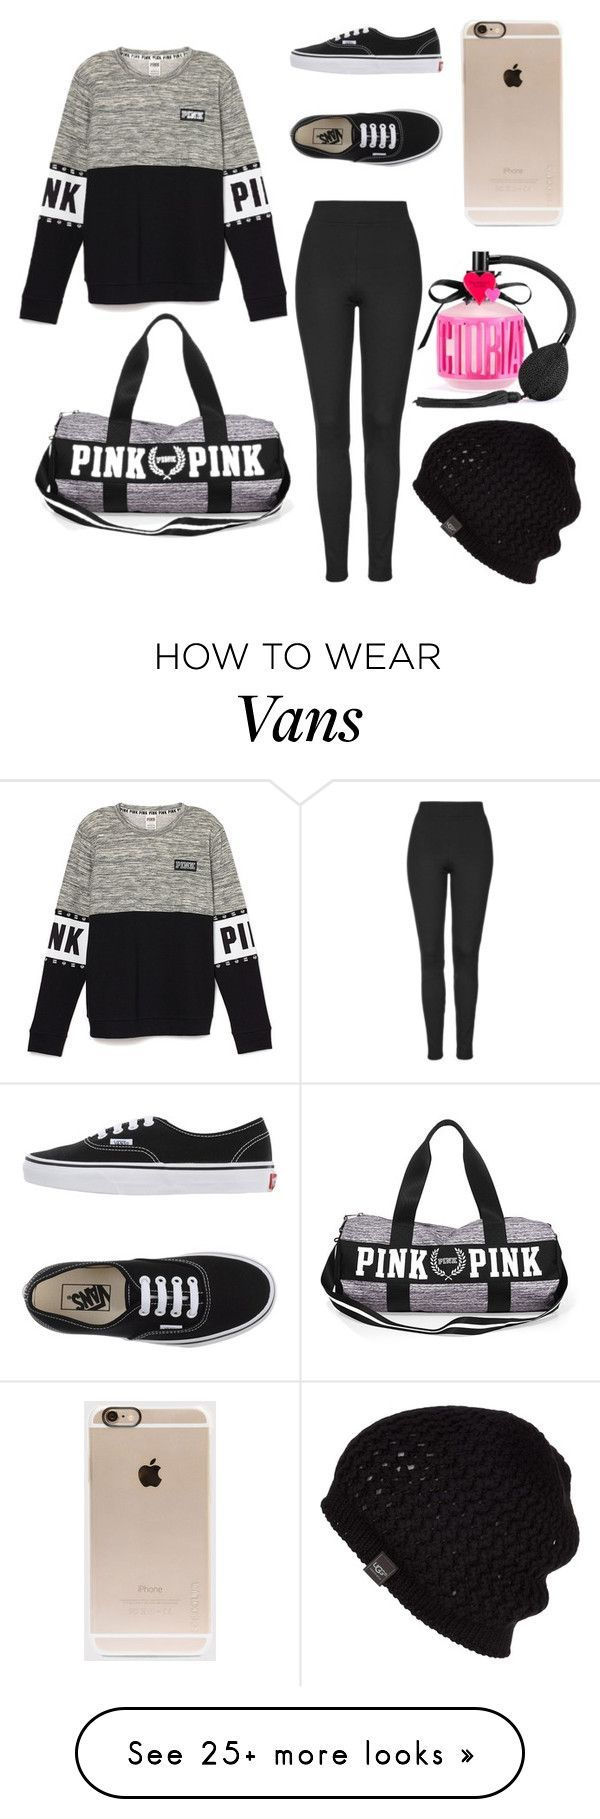 """""""Pink+Vans"""" by perfect25 on Polyvore featuring Vans, Incase, Topshop, Victoria's Secret, UGG Australia, women's clothing, women's fashion, women, female and woman"""